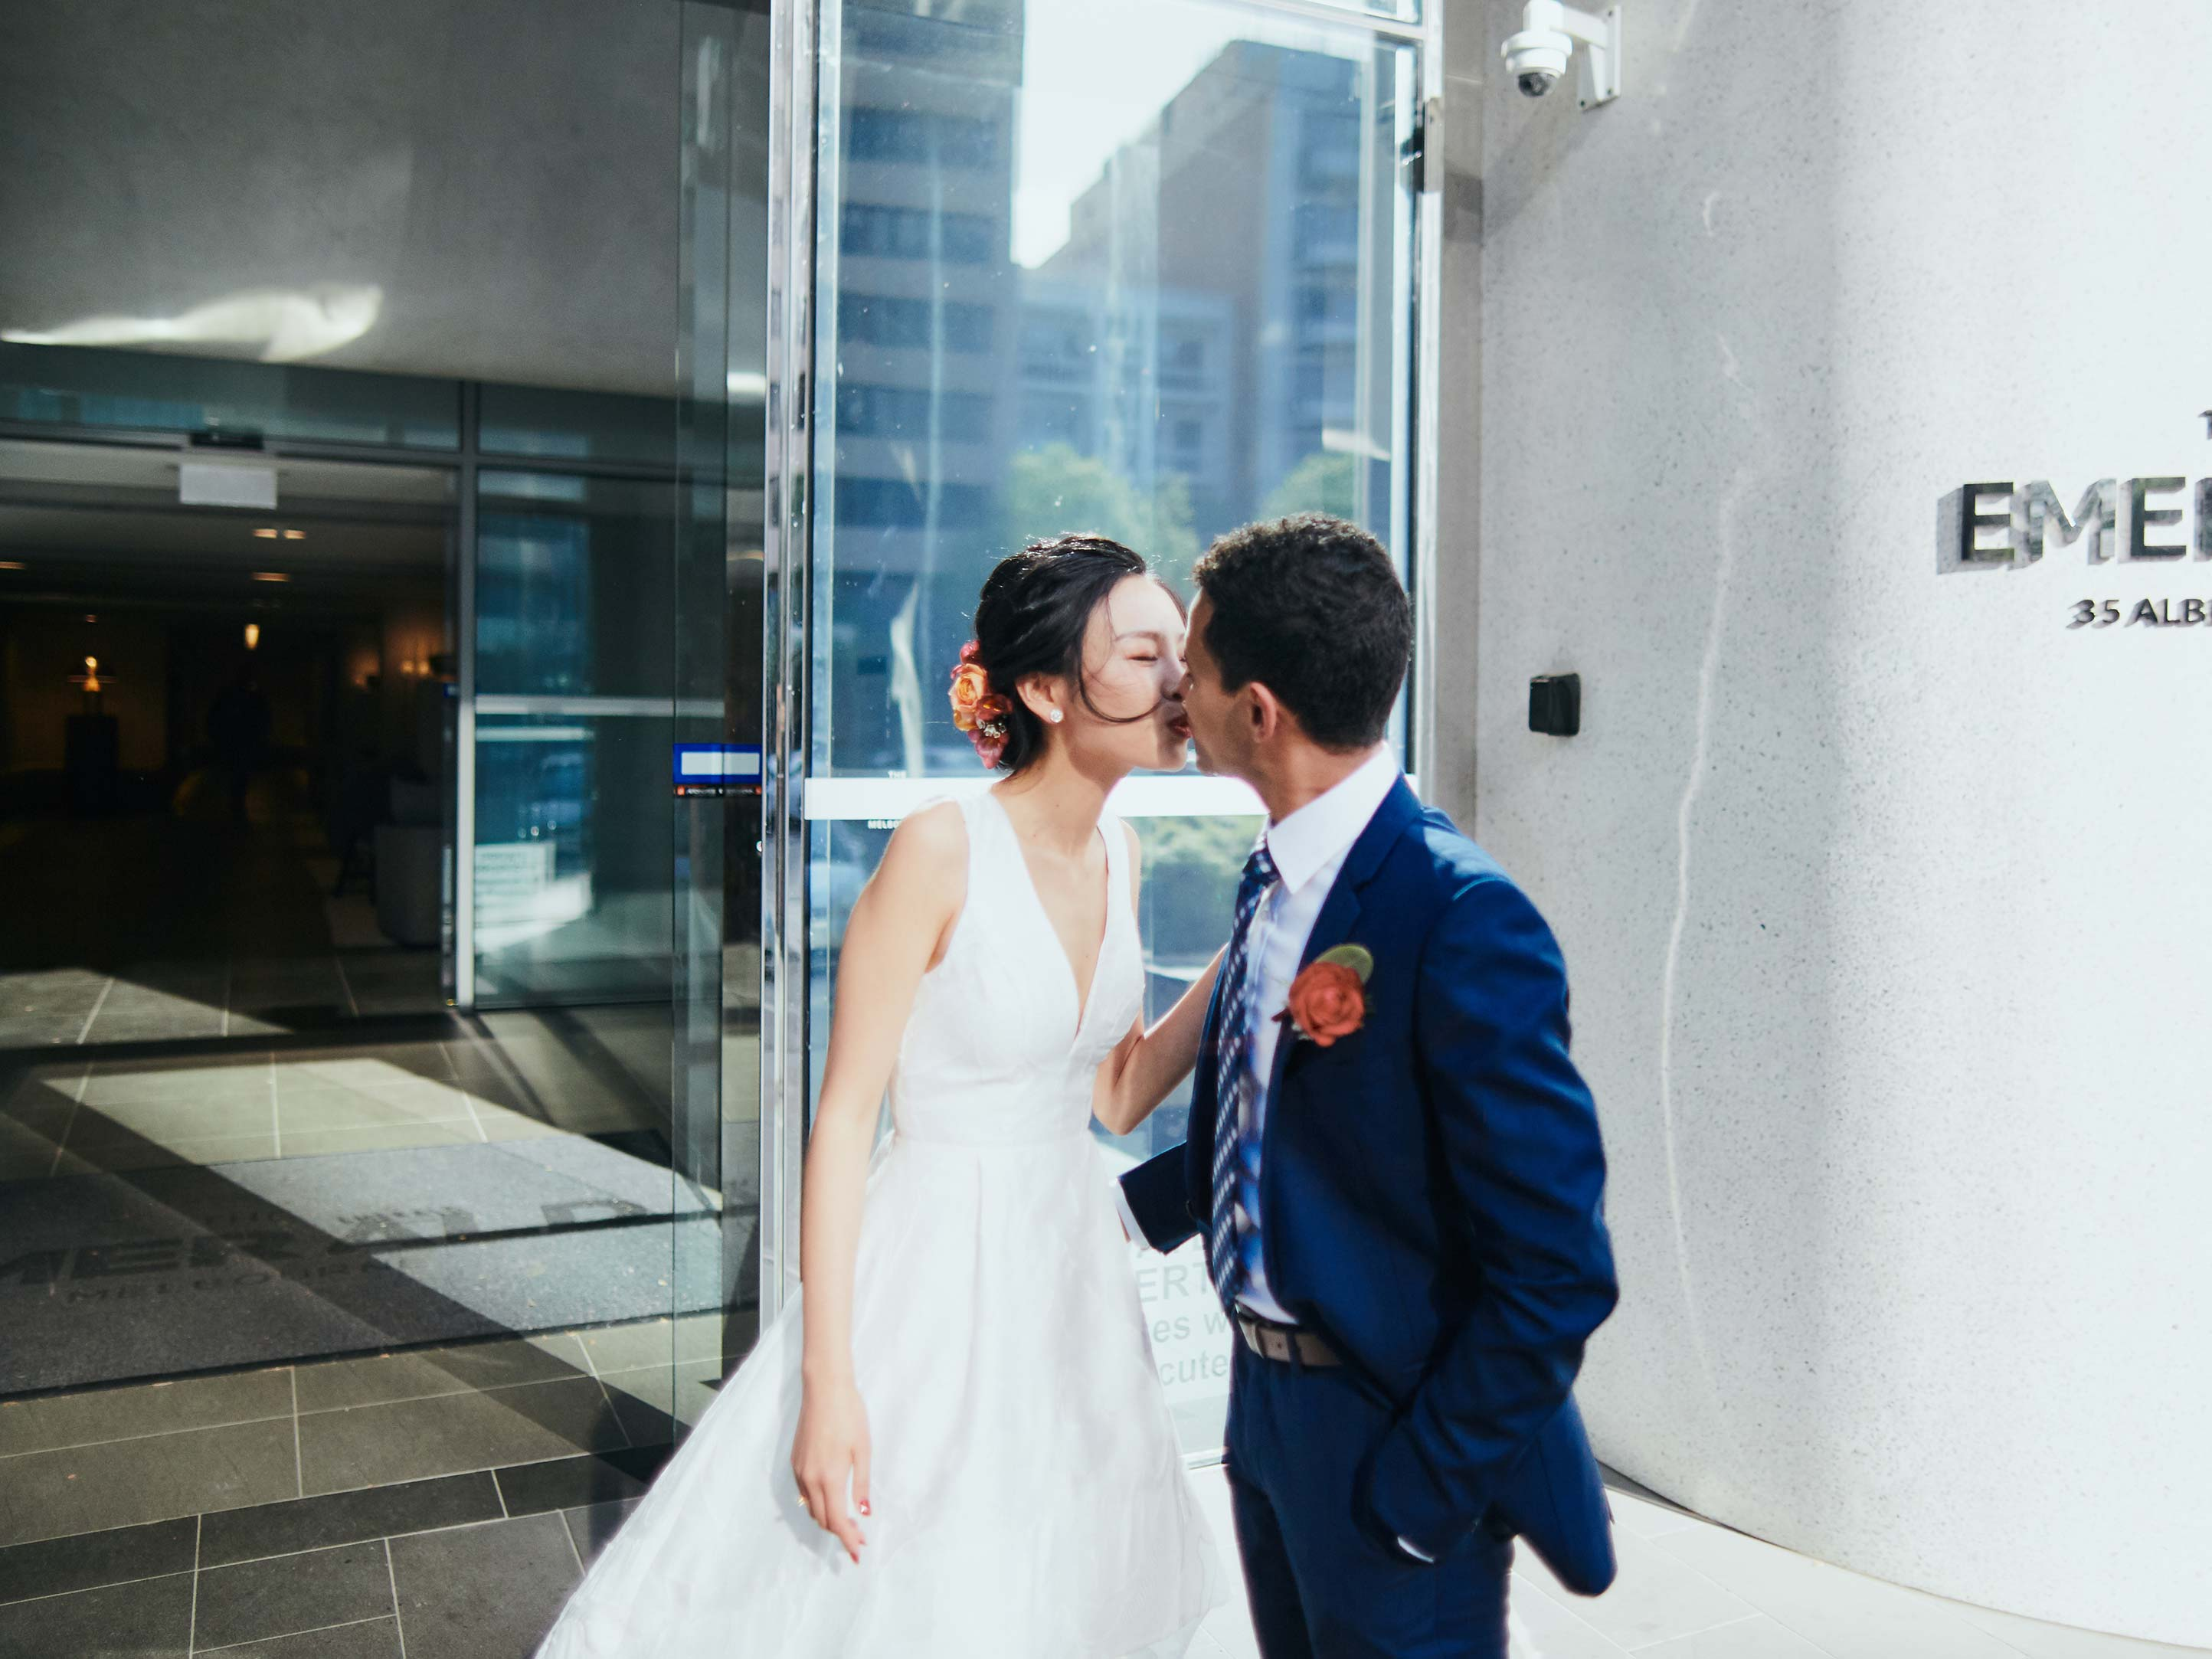 Melbourne-Wedding-Photographer-Kettle-Black-first-look